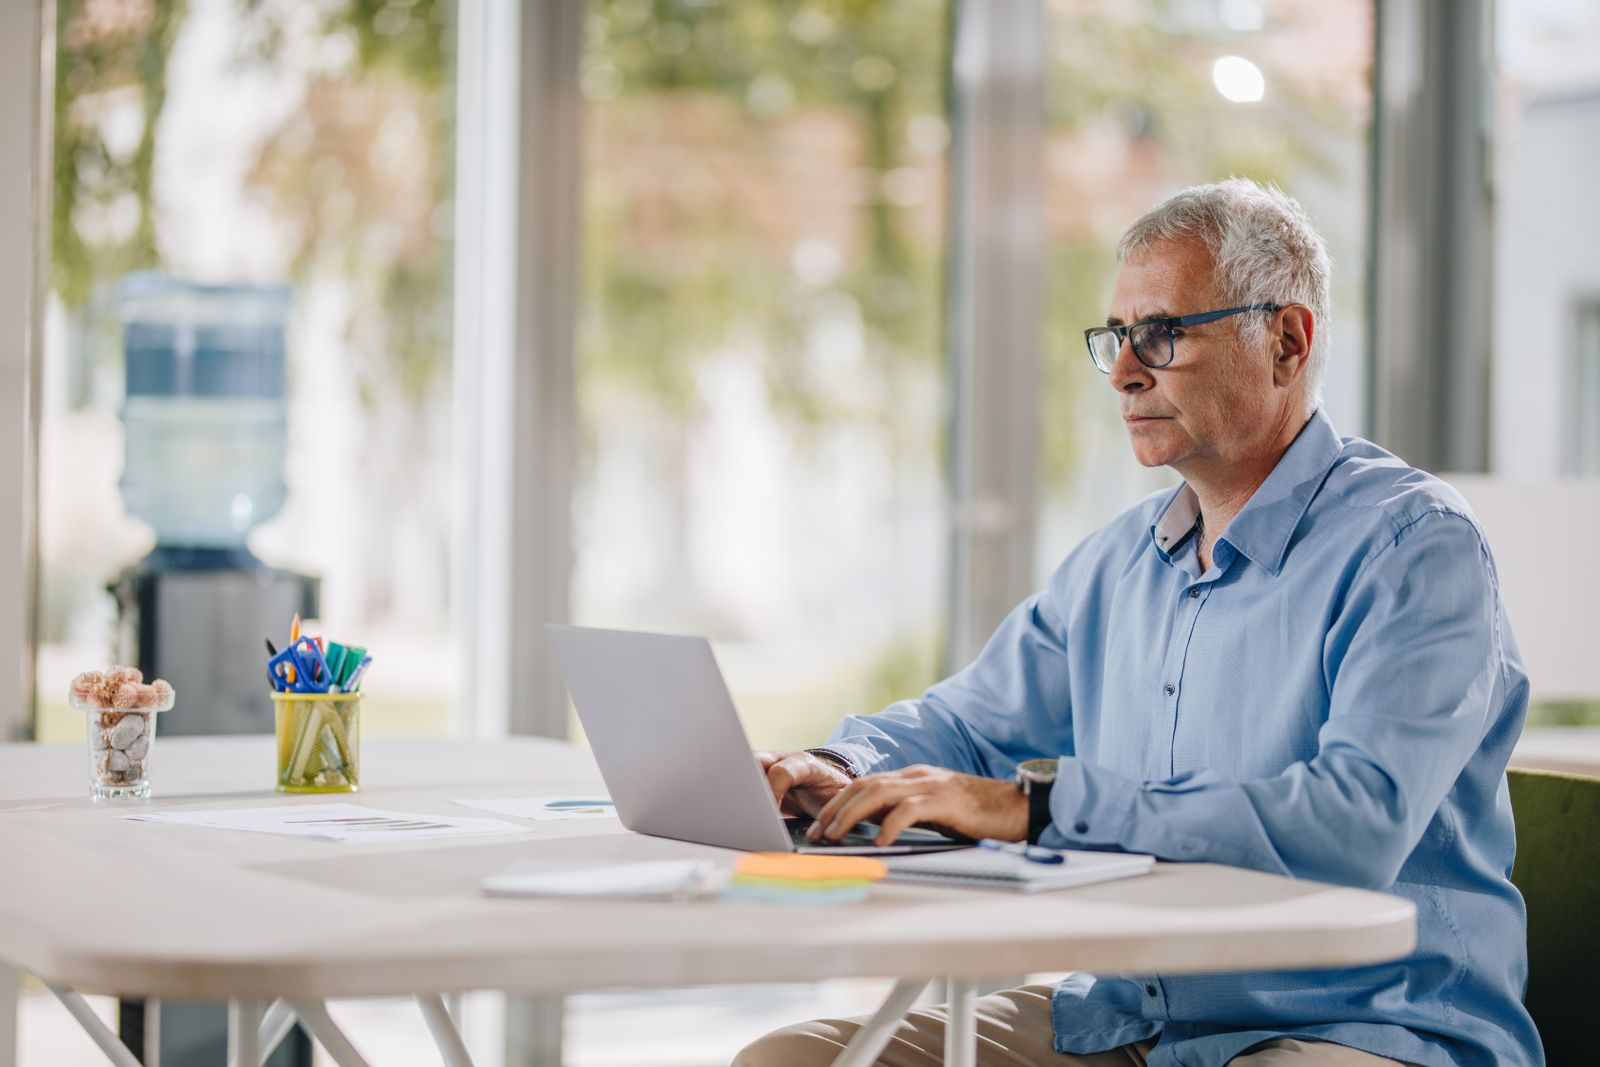 Boomers working from home